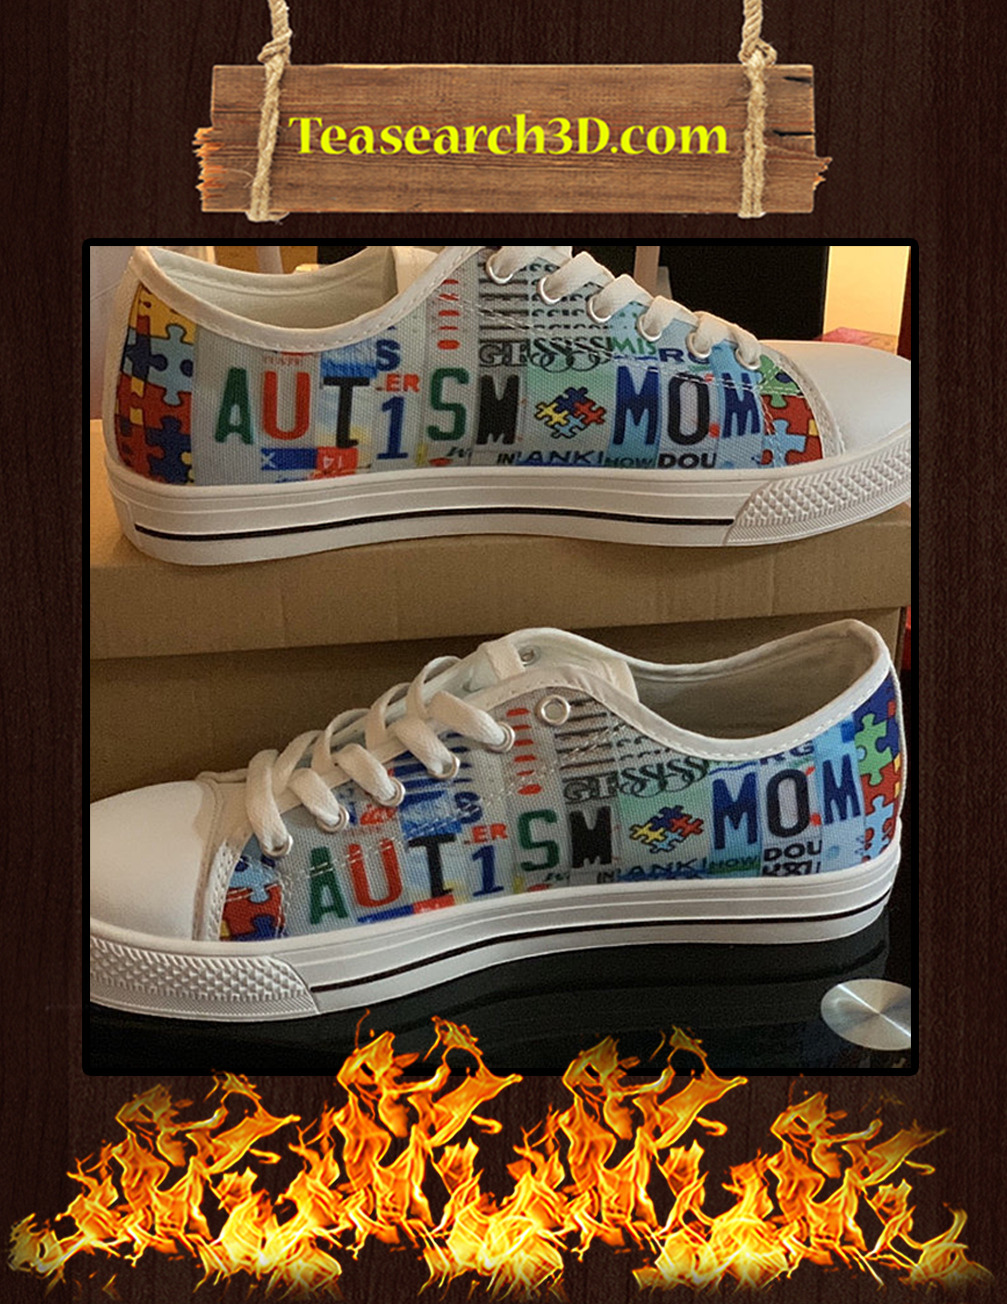 Autism Mom Low Top Shoes pic 1